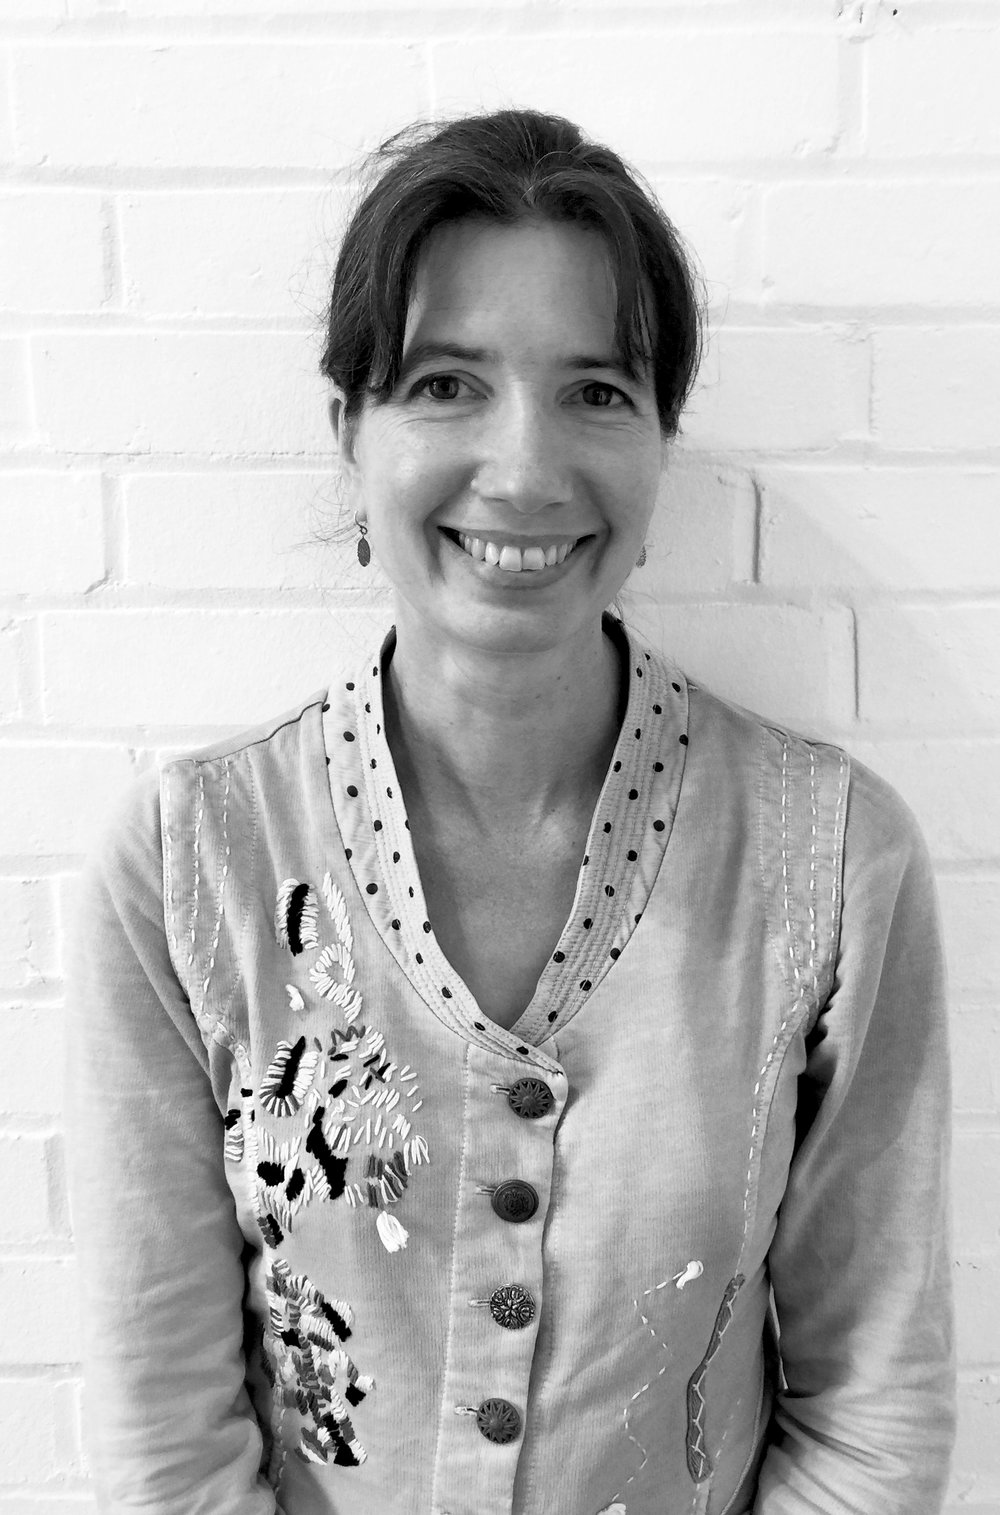 Helen fox, Practice Manager   Helen studied Natural Sciences (Chemistry) at Cambridge and then Theology at Oxford, so the obvious next step was Interior Design! Her responsibilities include project management, keeping the office running, and assisting with the company accounts.  Helen previously worked at Trinity College Computer Office on the College website. She has five children which has helped develop her multi-tasking skills.